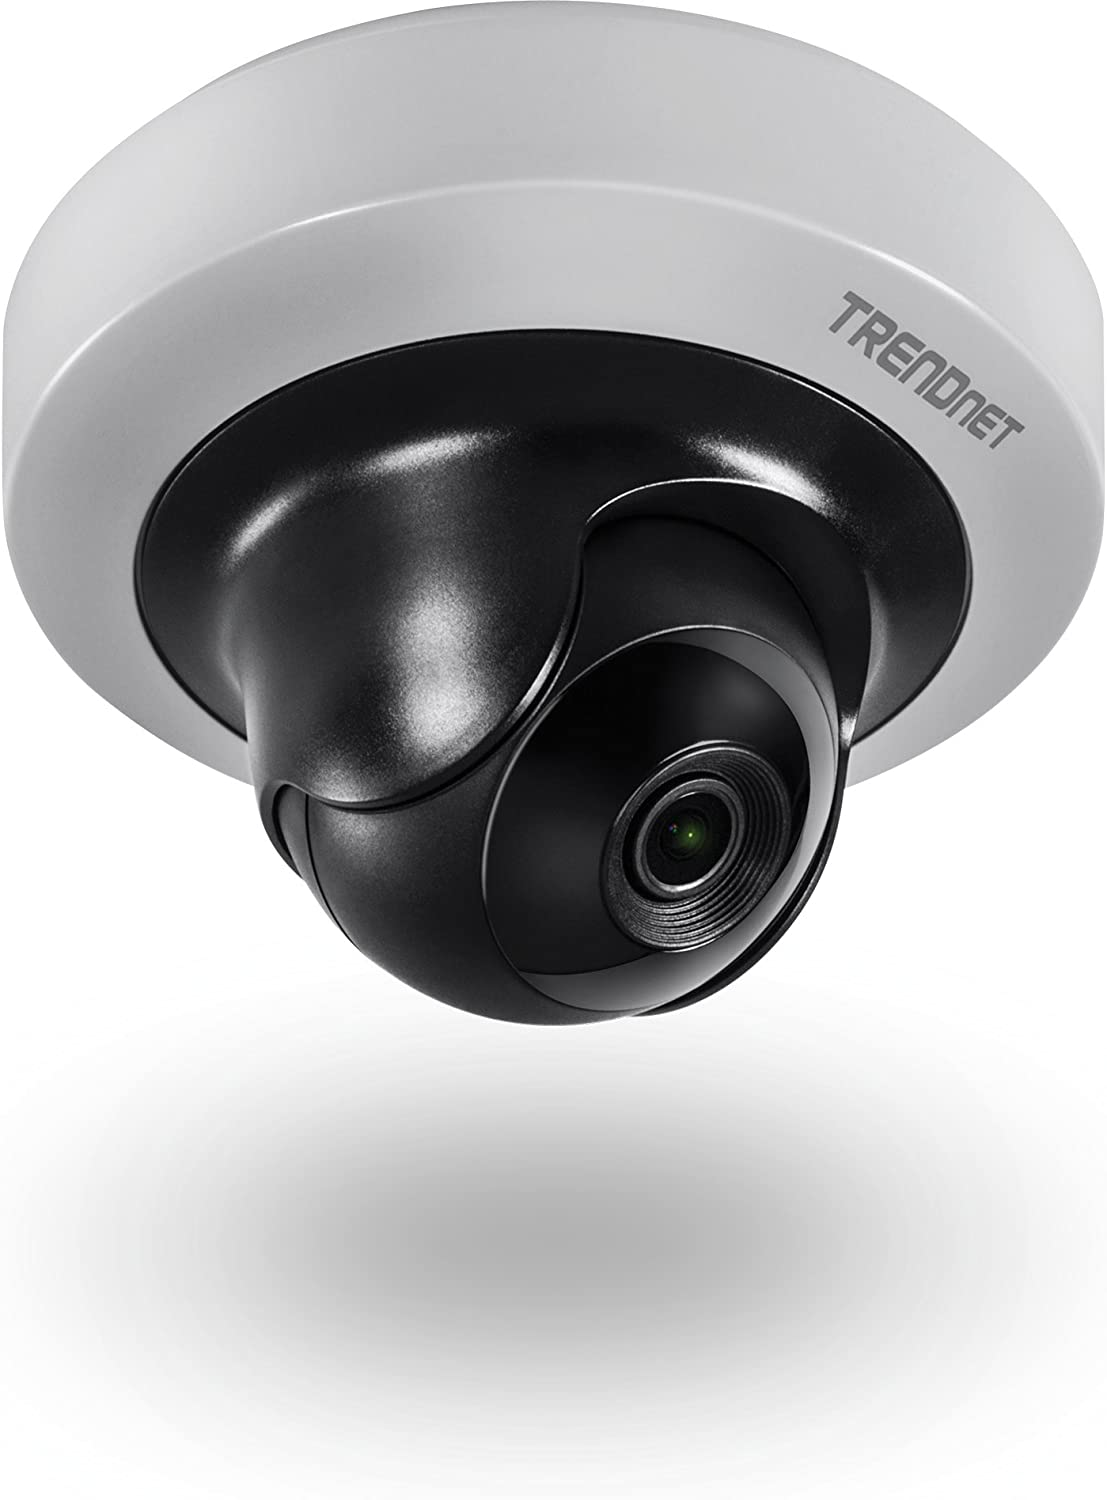 Foscam Full HD 1080P WiFi IP Camera, 2MP Indoor Pan Tilt Home Security Surveillance Camera Night Vision, Two-Way Audio, Motion Sound Detection, Free Image Video Cloud Service Available, R2C White